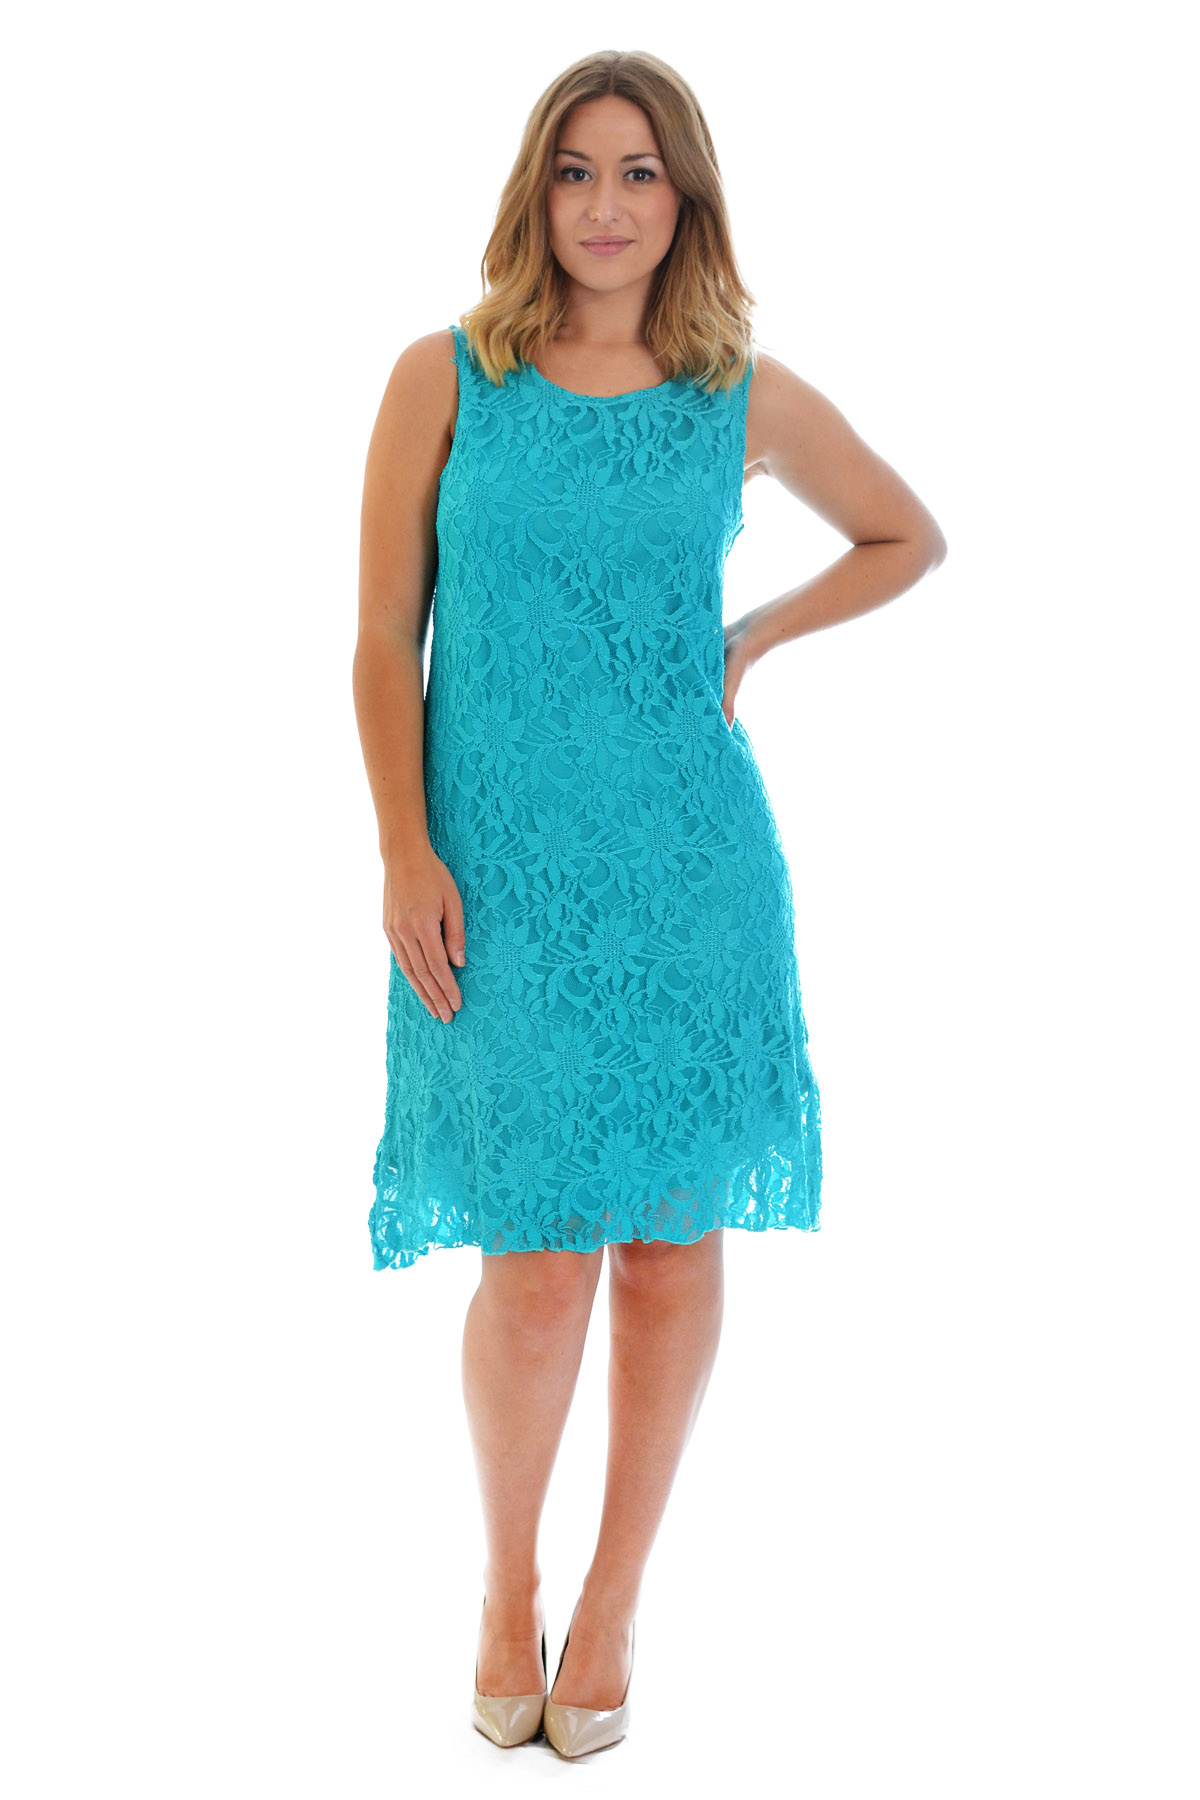 Shop for women's casual dresses, cocktail dresses, formal dresses and special occasion dresses available in missy, plus and petites sizes at newbez.ml